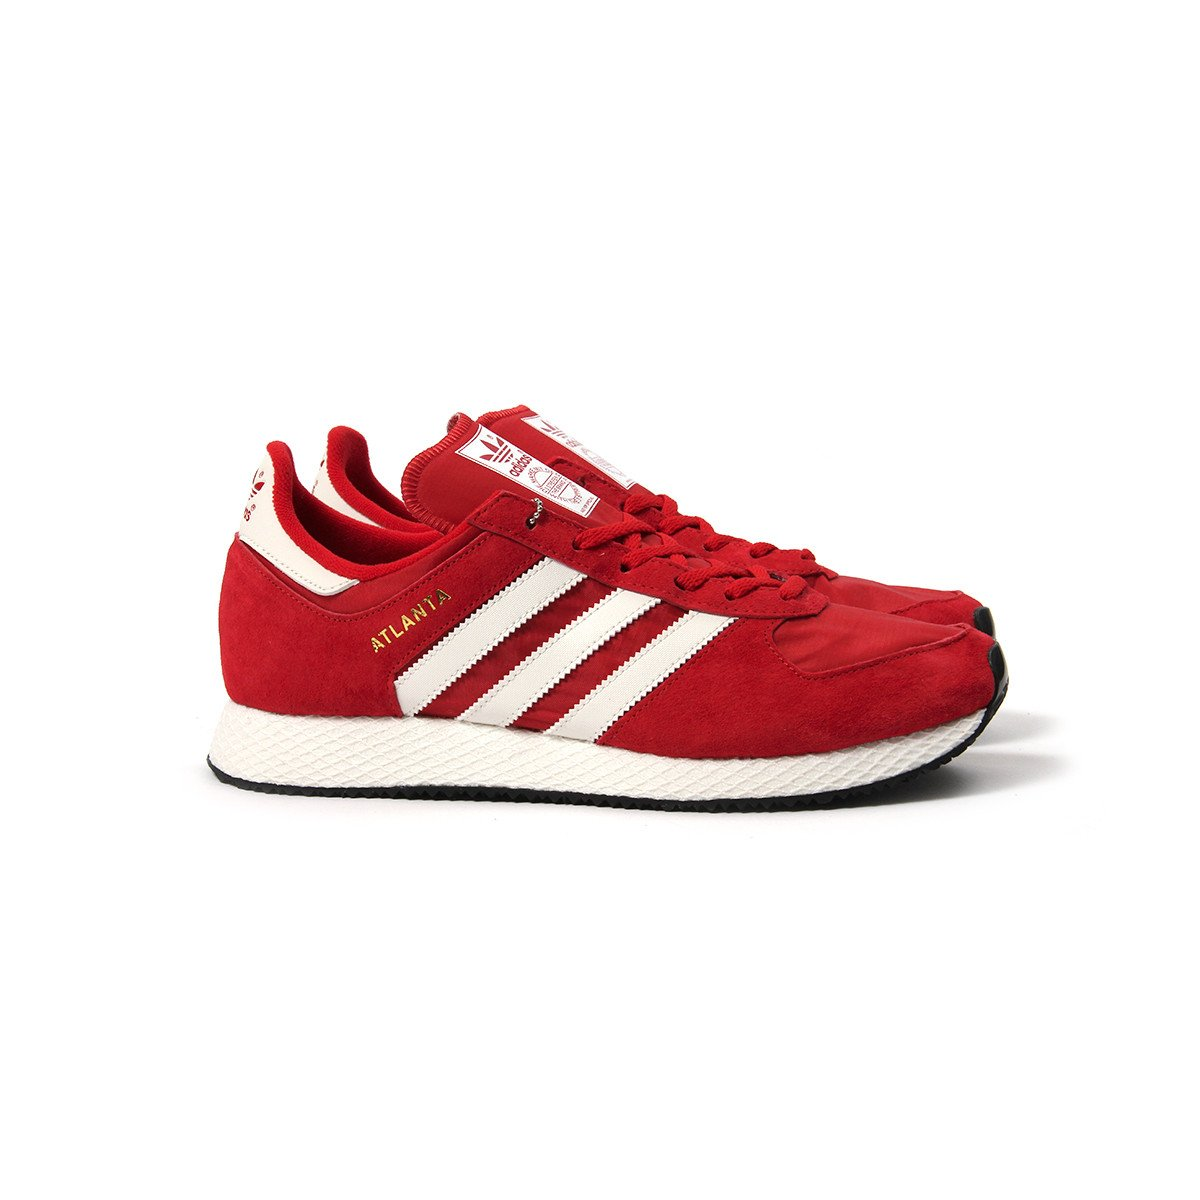 9 NEW ADIDAS Originals ATLANTA Spzl Spezial Scarlet Red White Gold BY1880